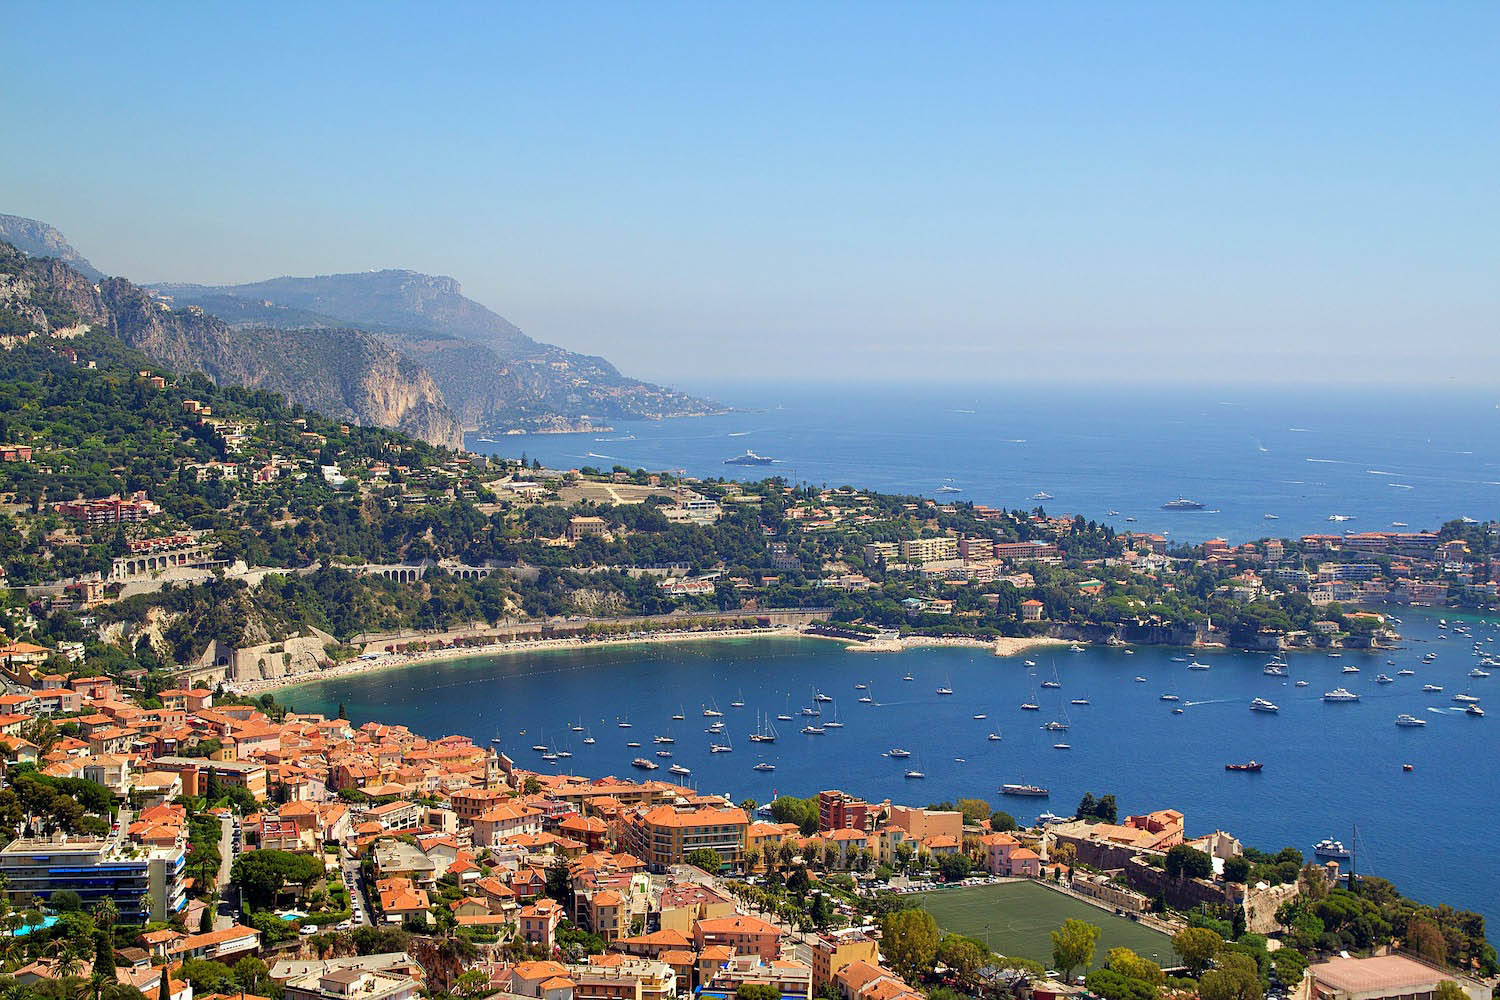 Bay of Nice, France with red roof houses, a sandy beach, and clear blue water with lots of boats